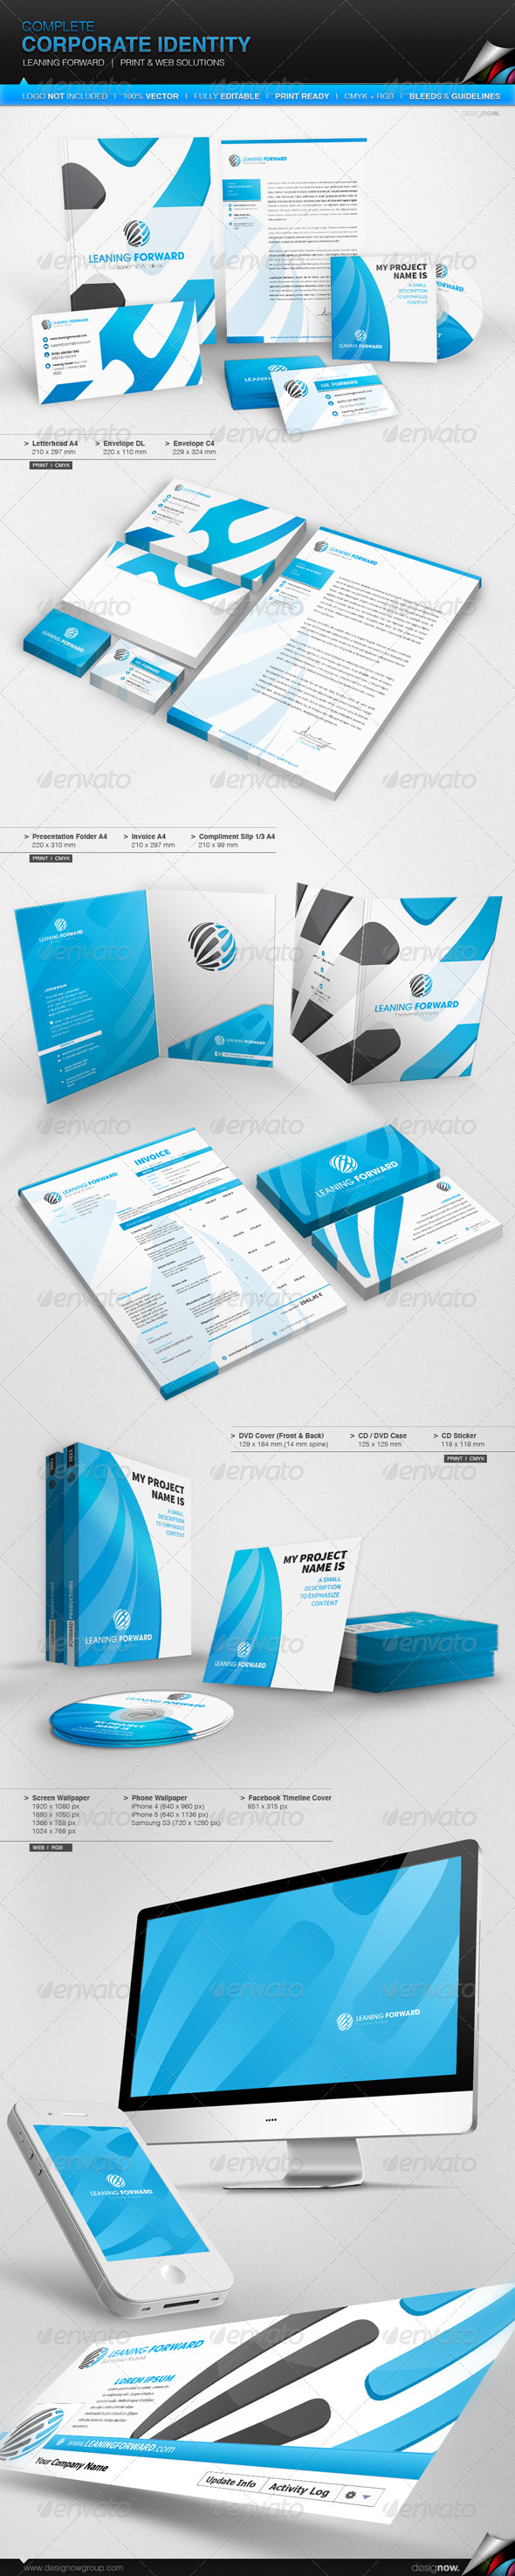 GraphicRiver Corporate Identity Leaning Forward 3853468